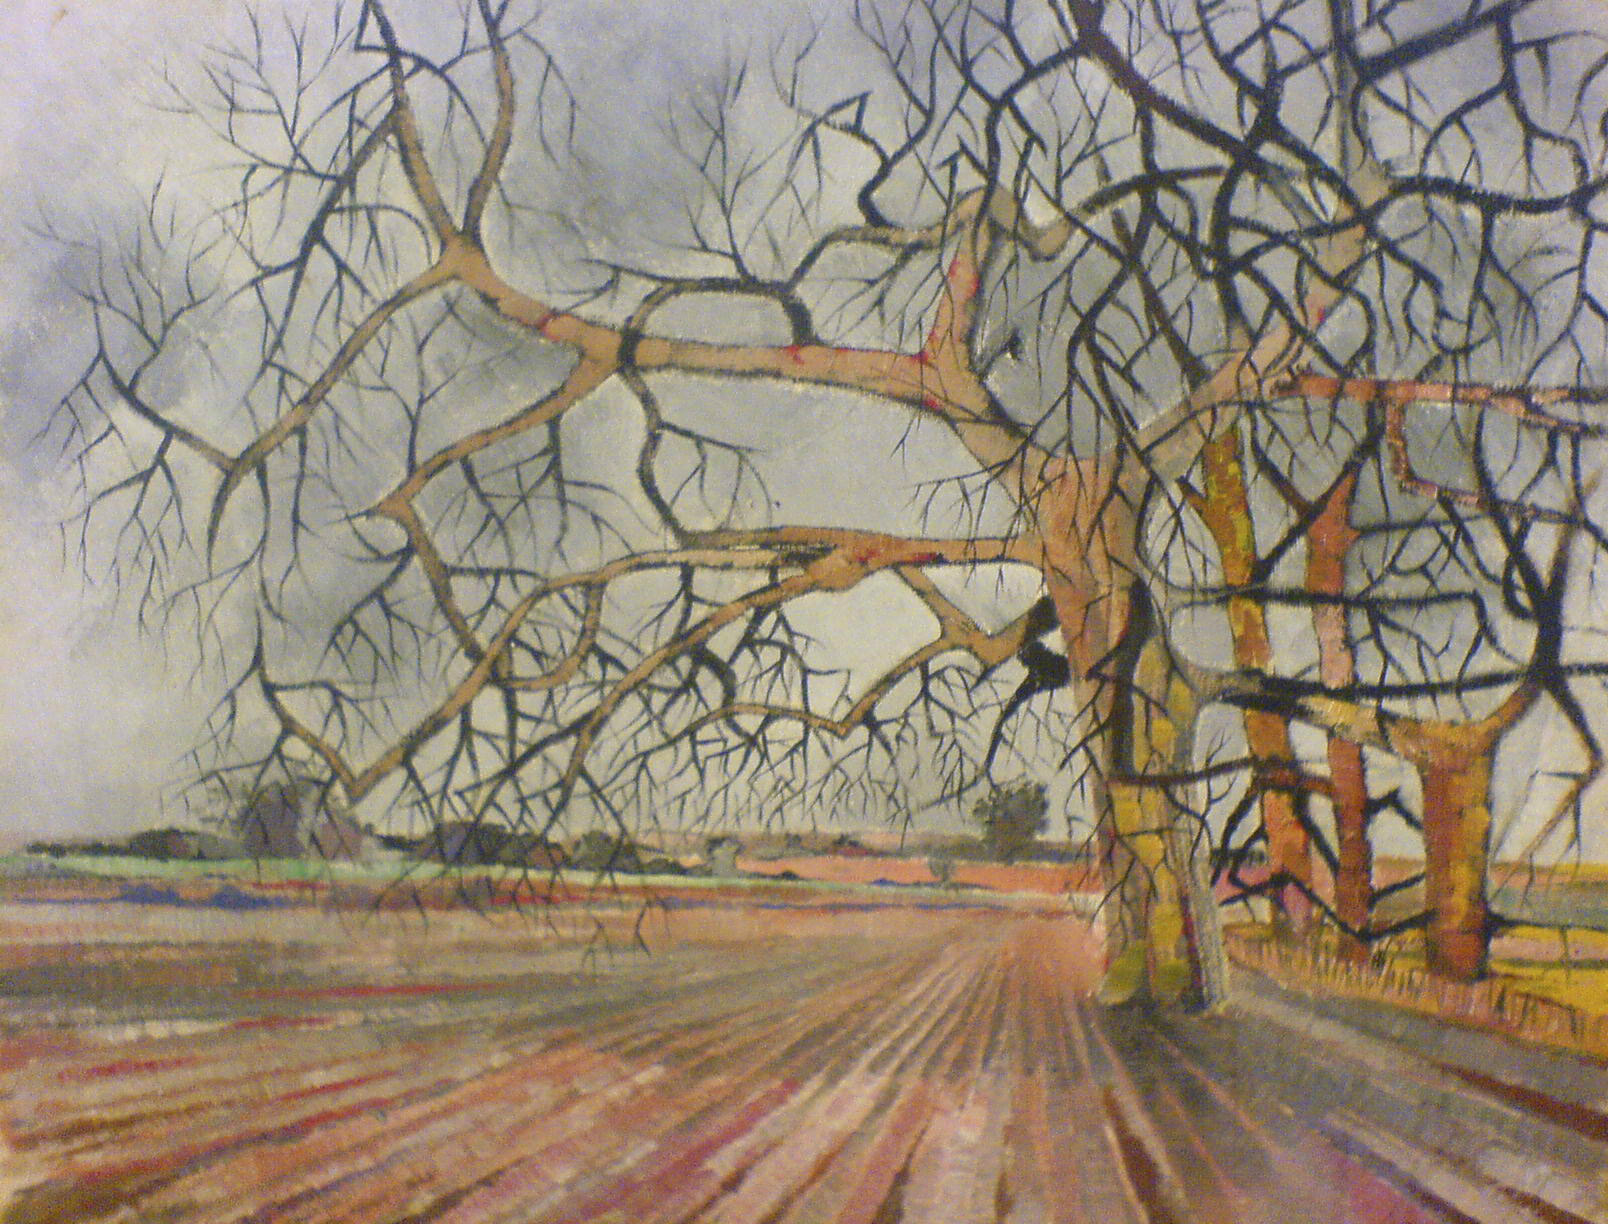 Field in oils painting 1952